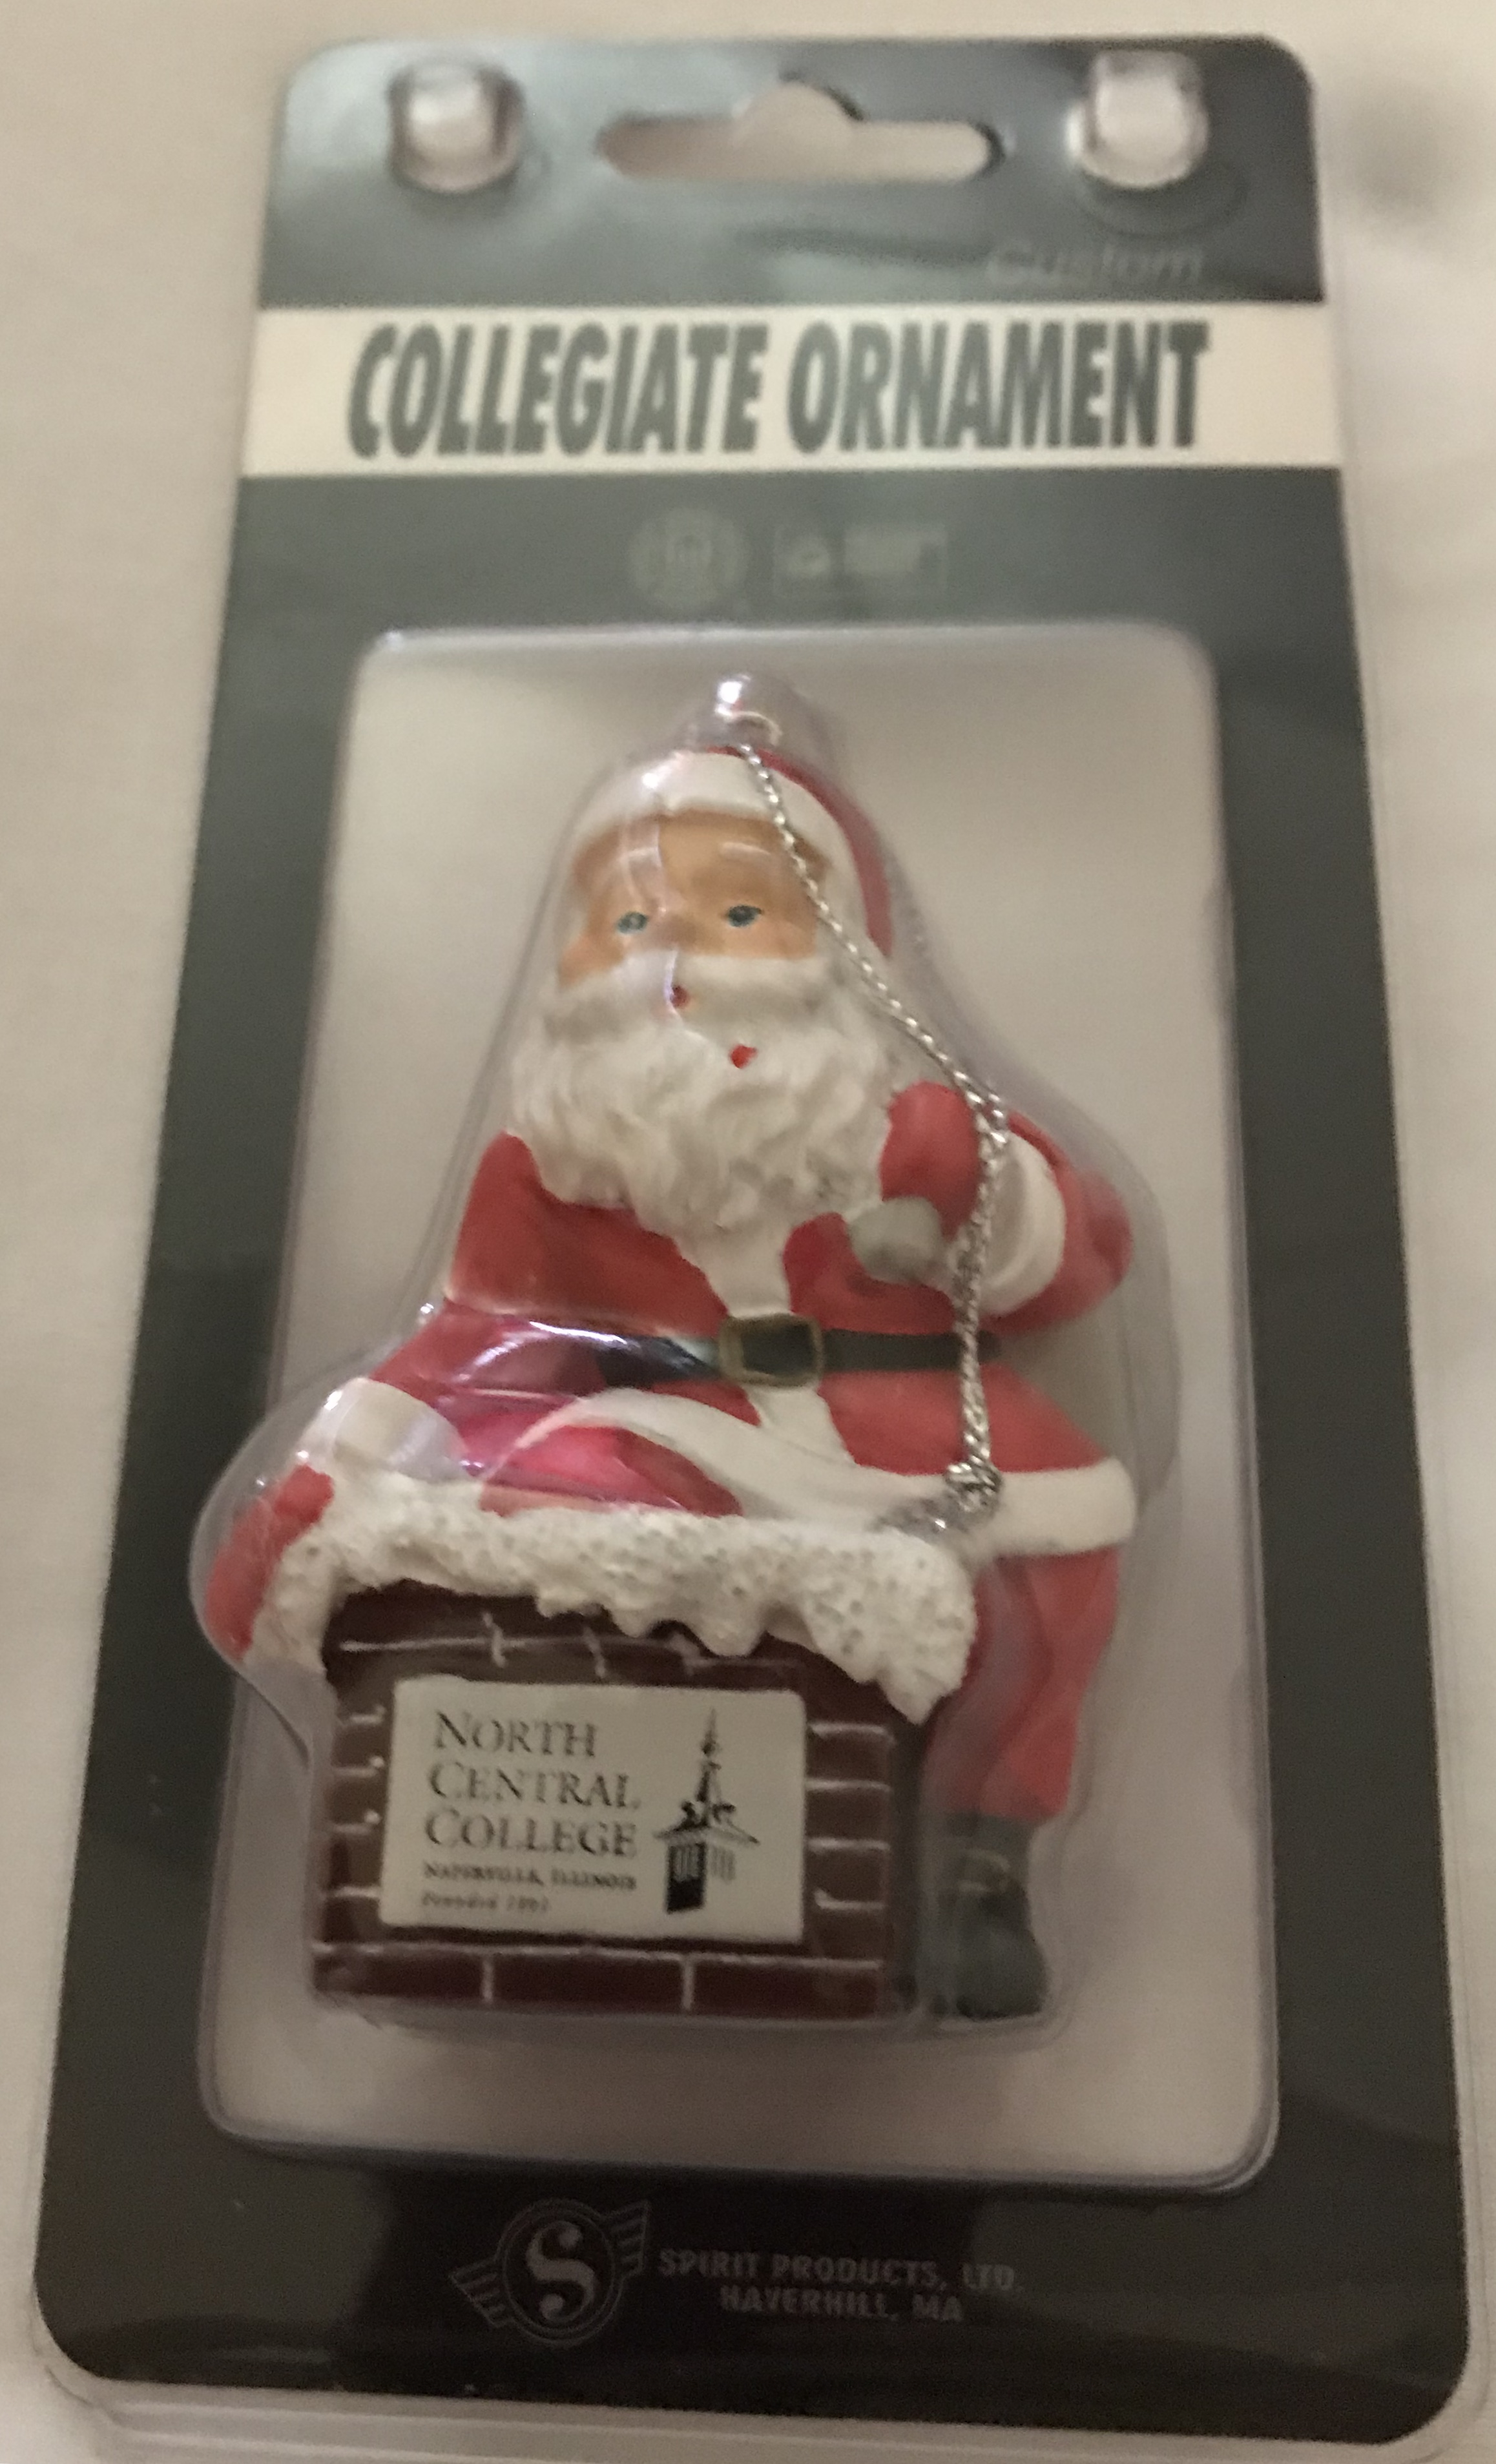 Image for the Santa Ornament product